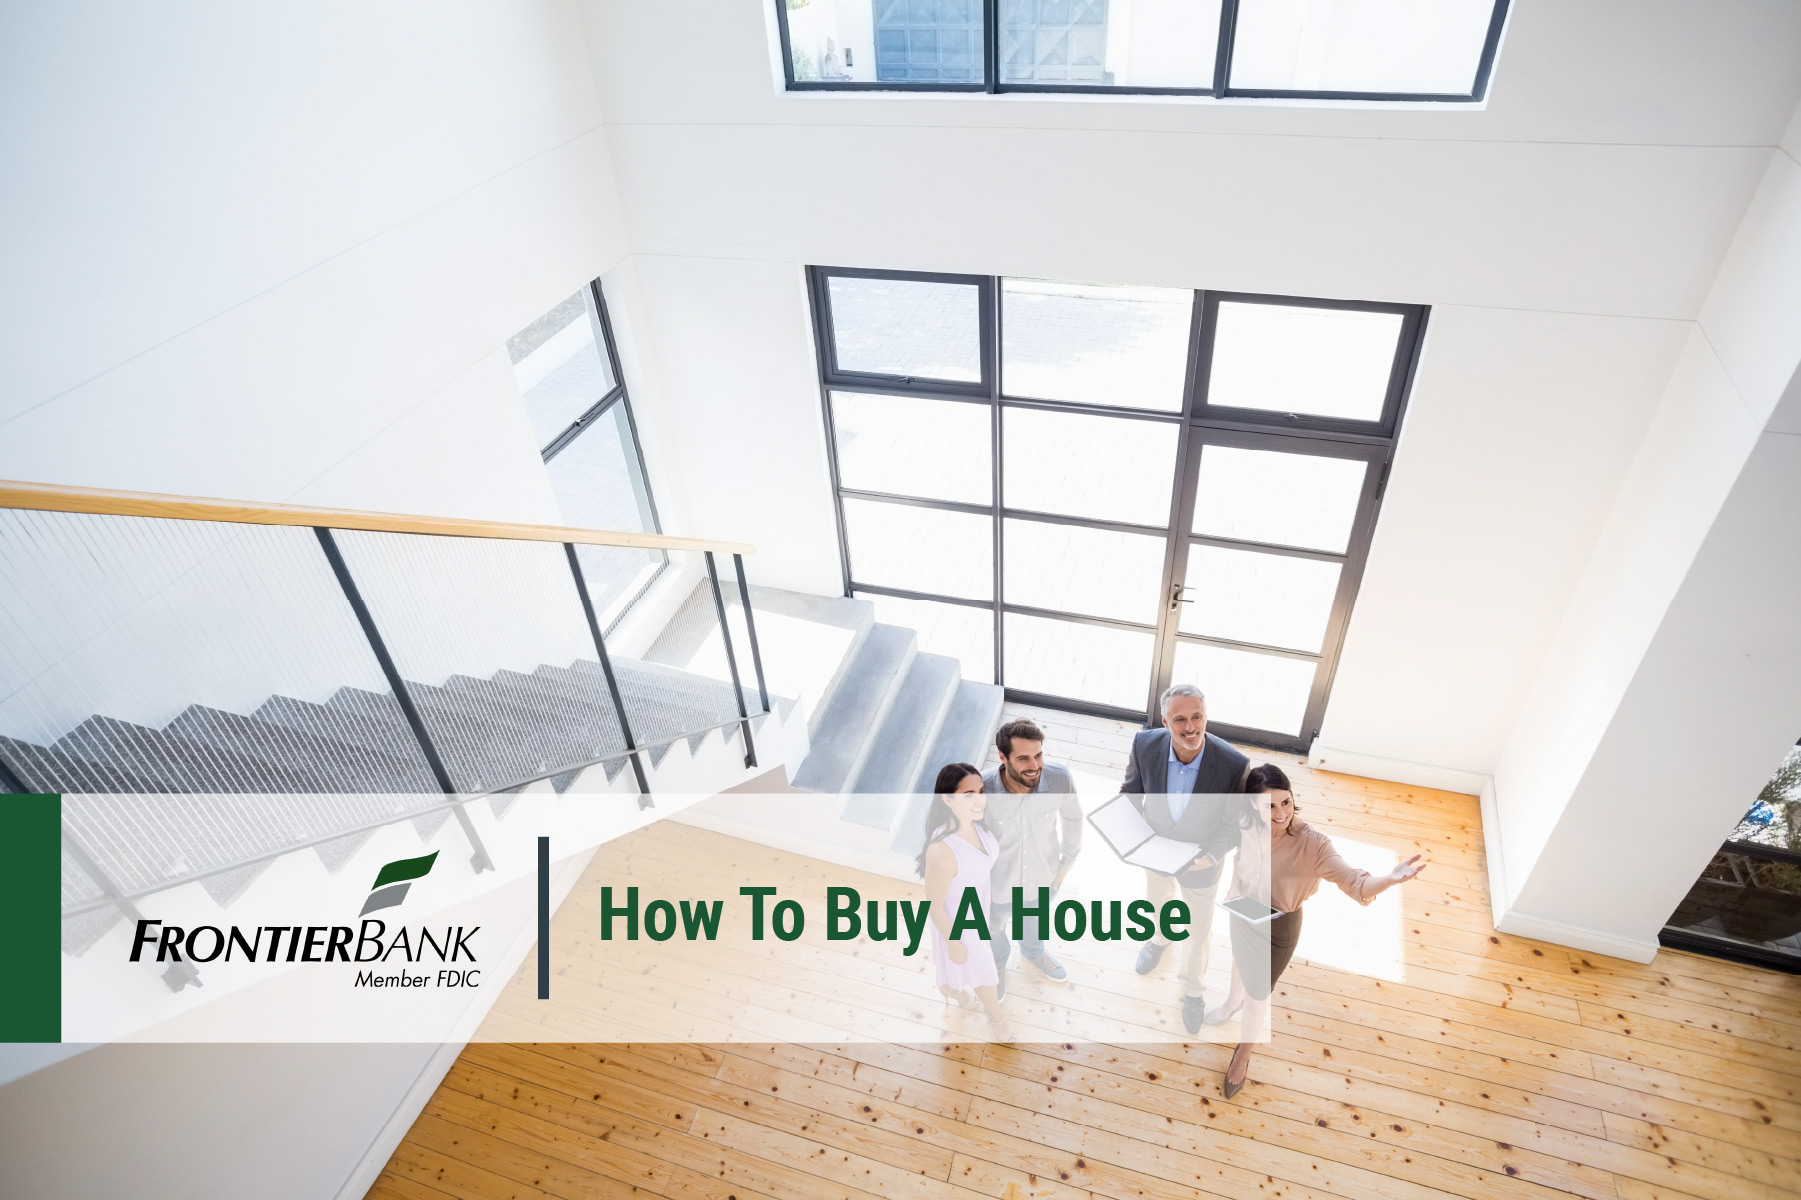 How to Buy a House part 2